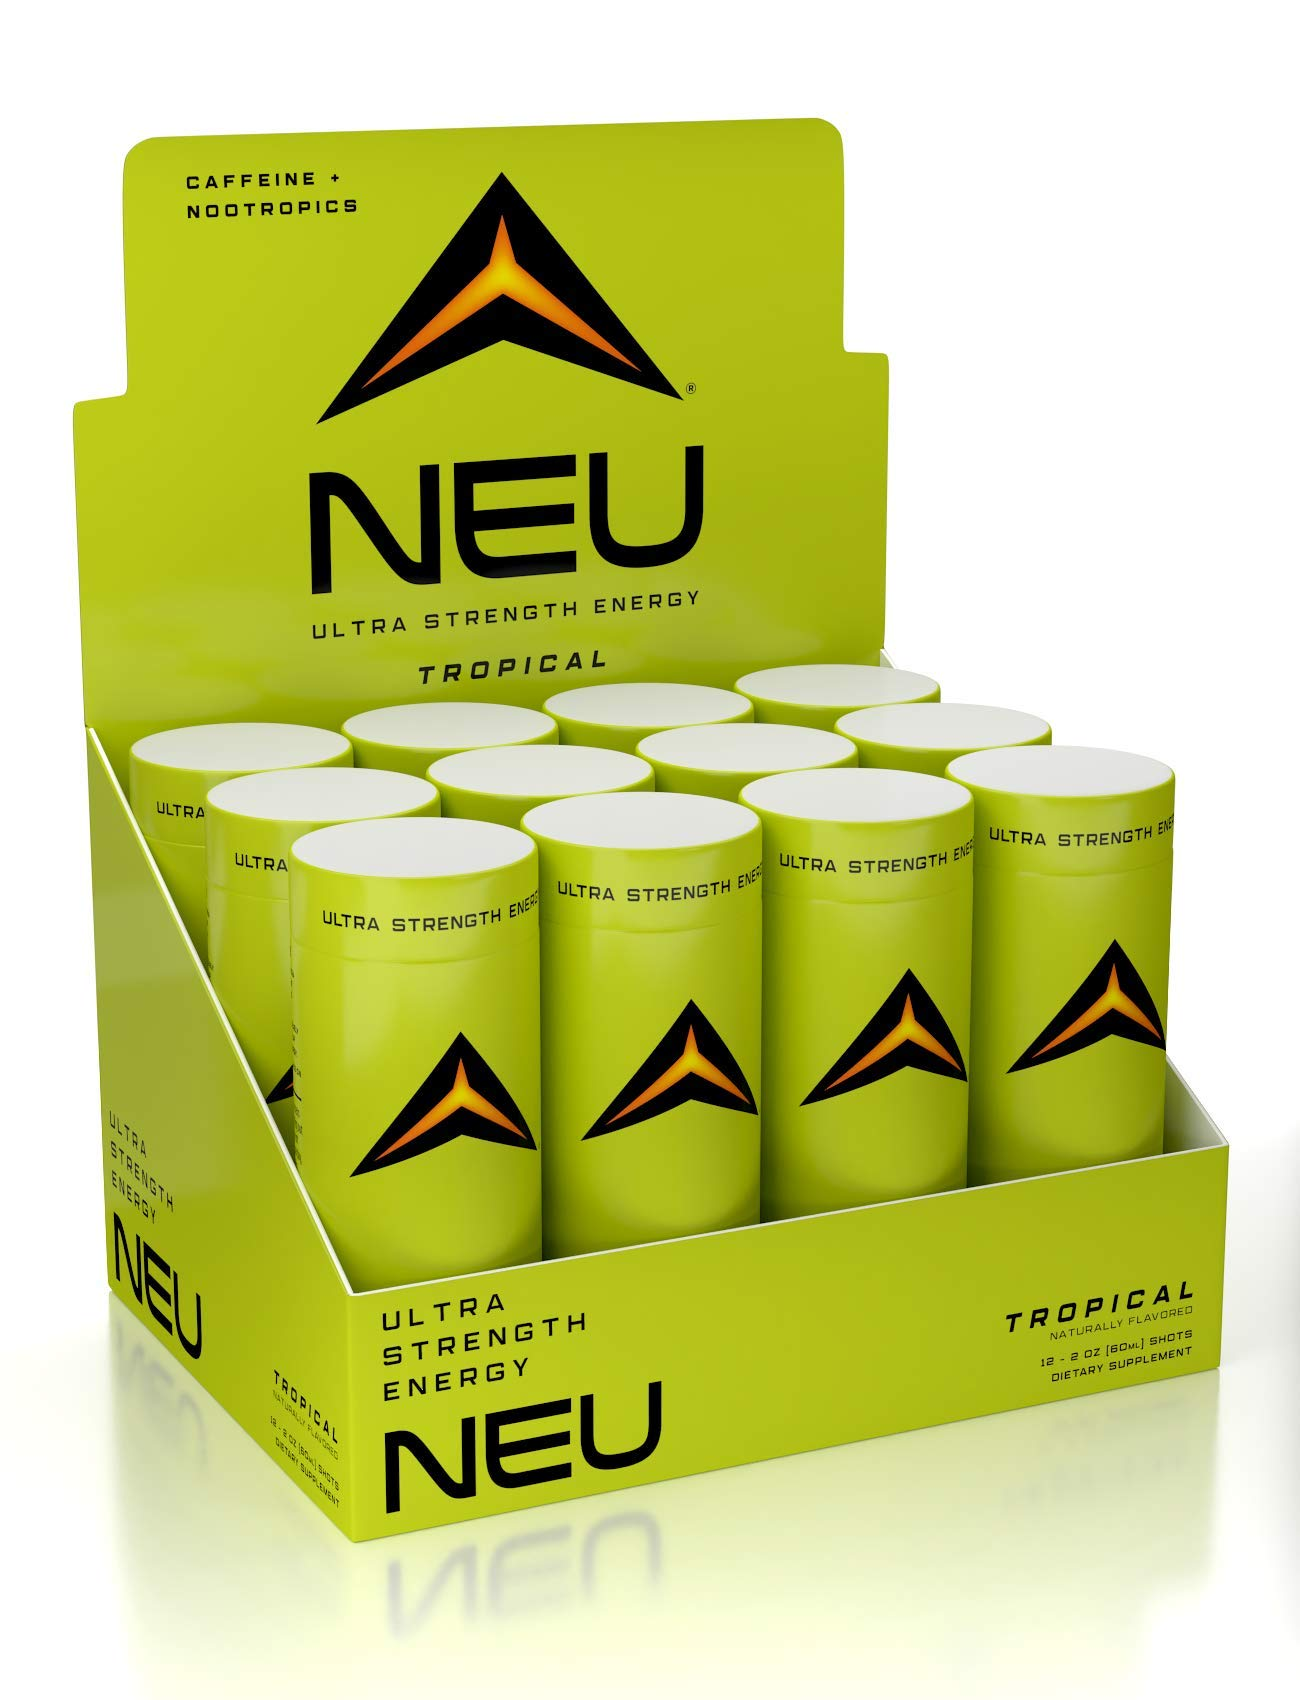 NEU Extra Strength Nootropic Energy Shots, Energy Drink: Brain Booster Focus Supplement, Coffee Alternative Nutritional Drink + Keto Energy Pre Workout with Zero Sugar - Tropical Punch 2oz (12 shots) by NEU